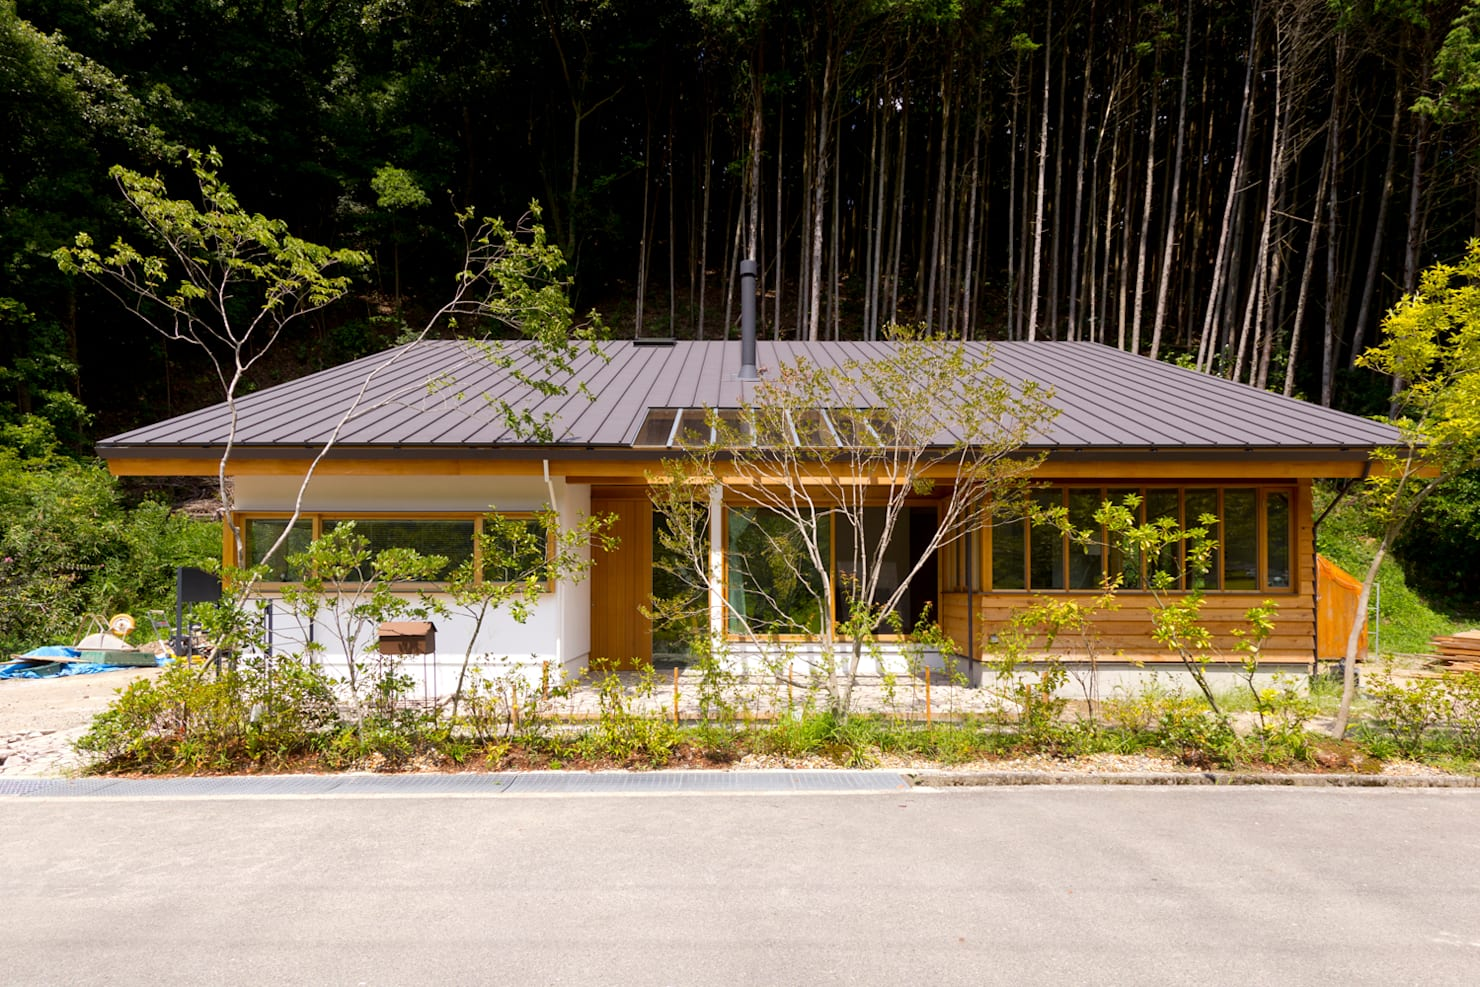 The one-storey timber home of your dreams